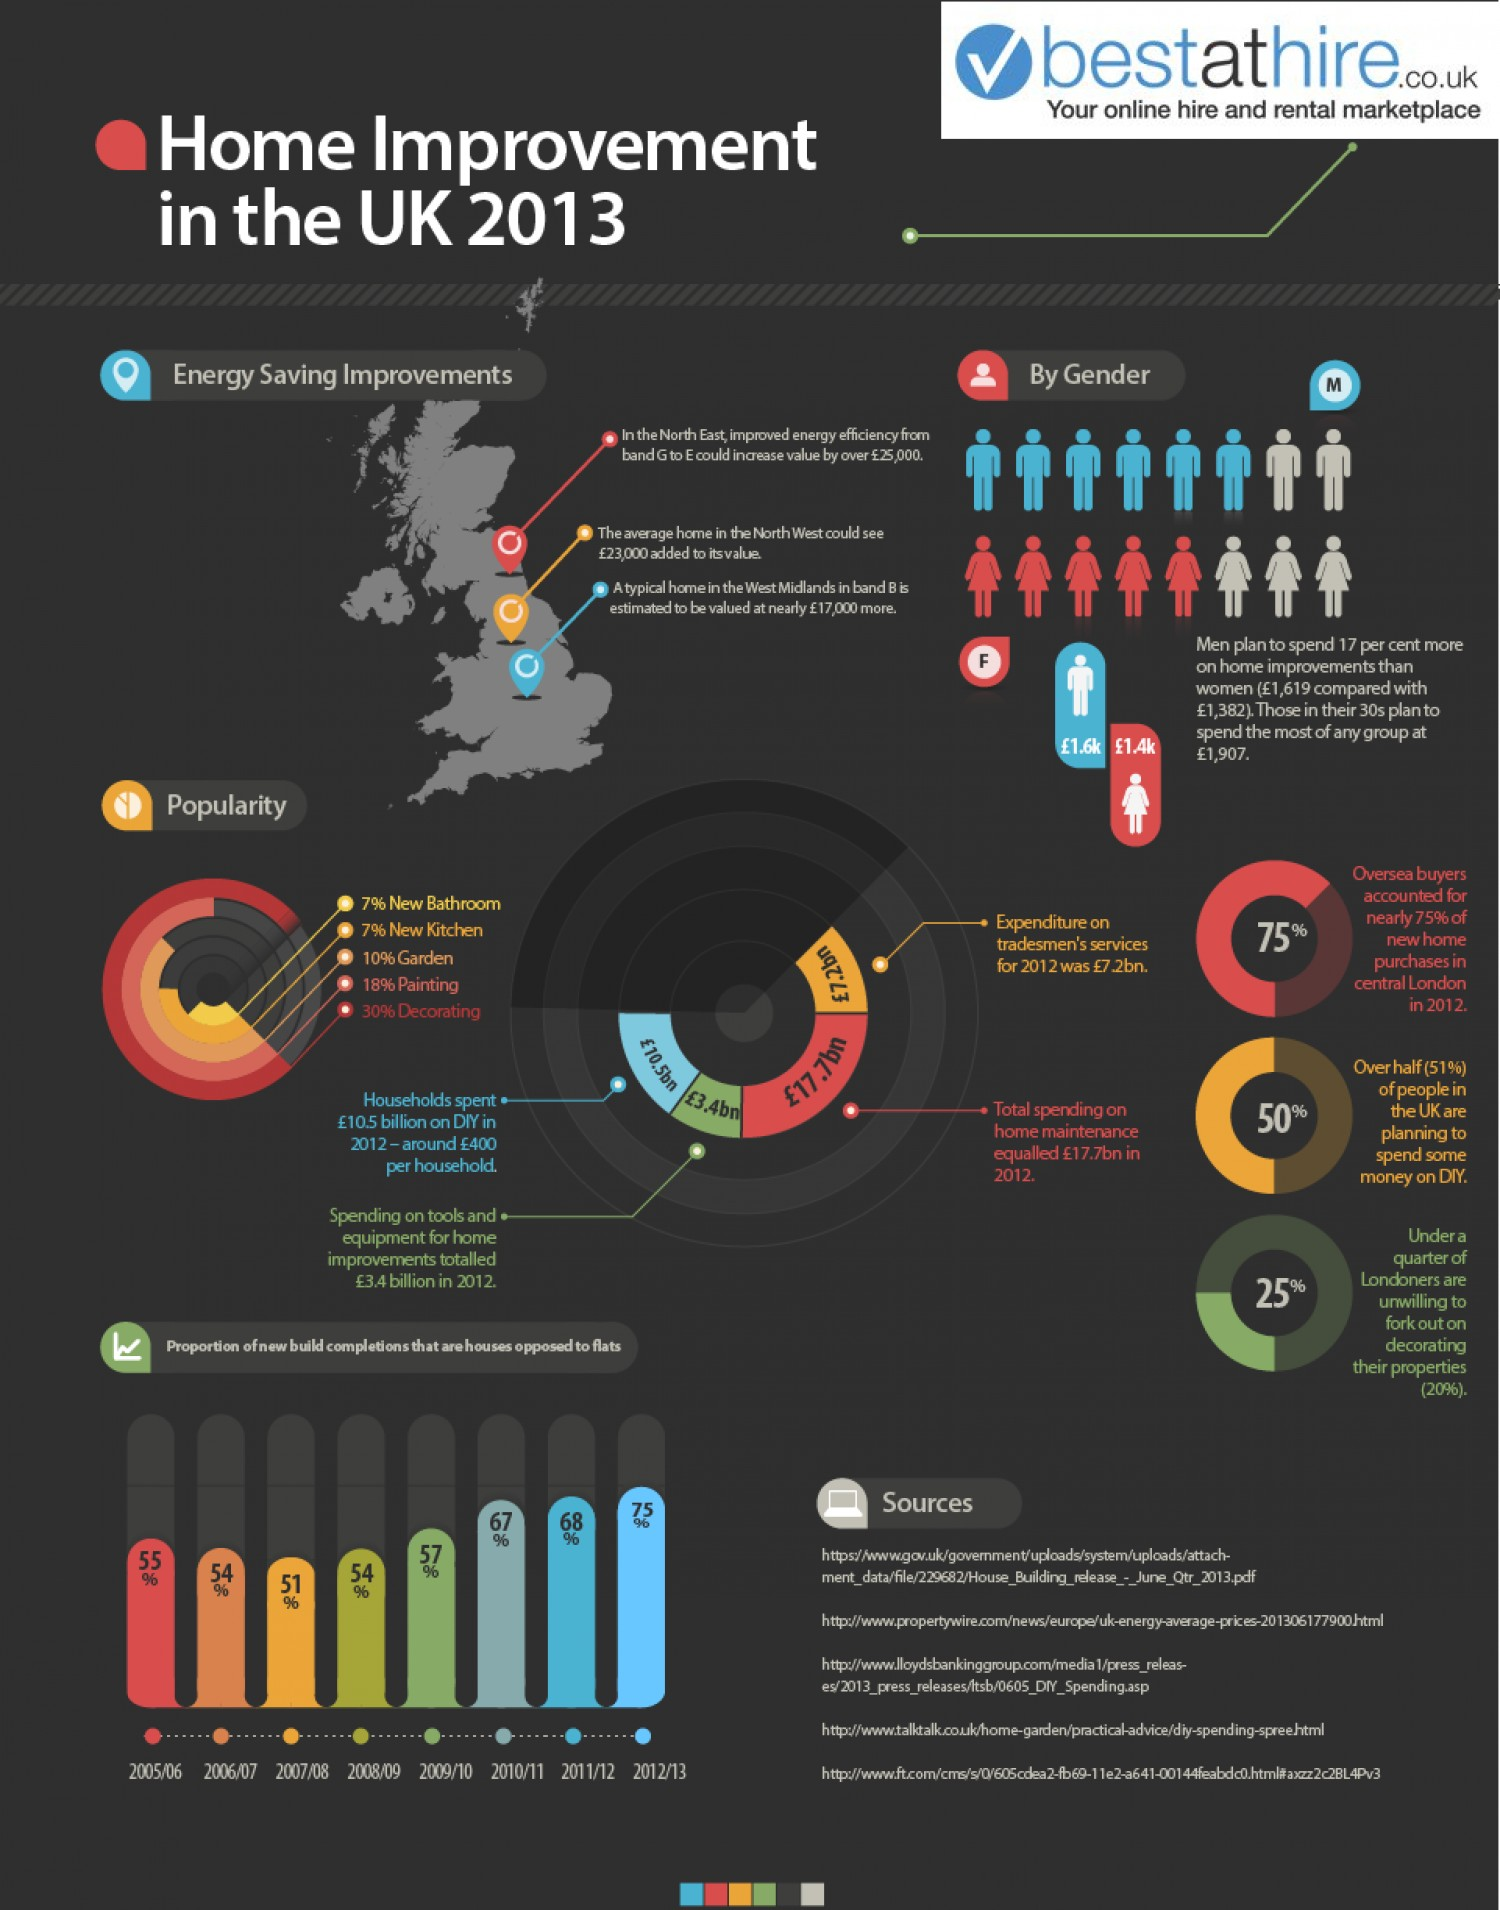 14. 2013 UK Home Improvement Trends